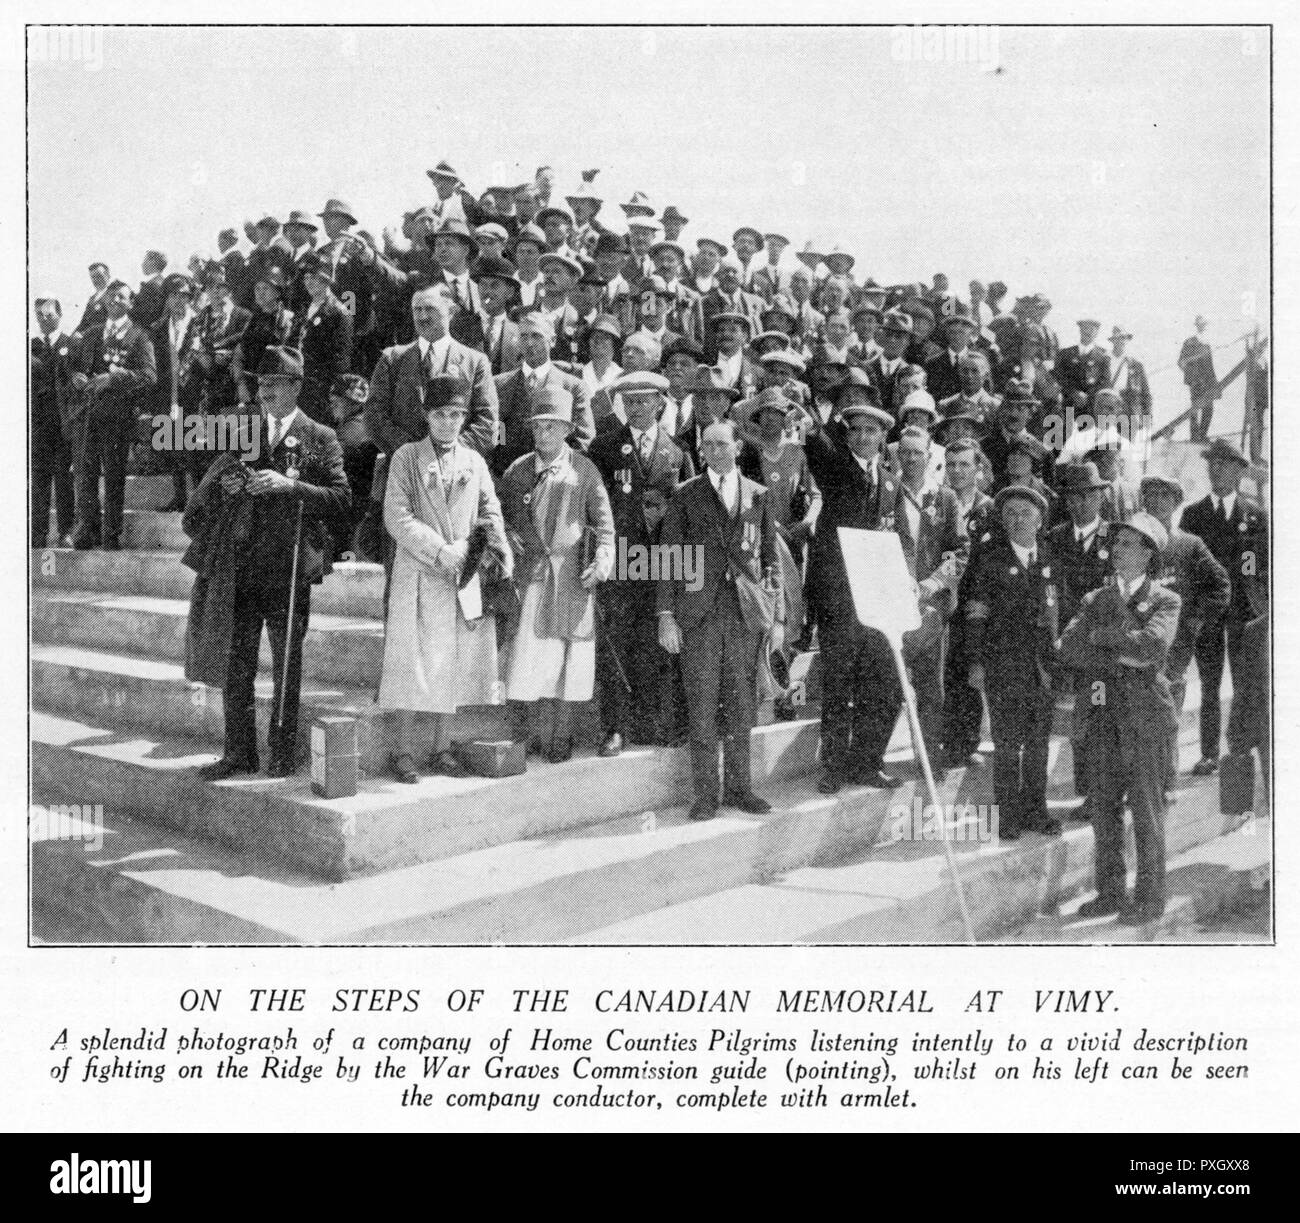 A group of Home Counties pilgrims on the steps of the Canadian Memorial at Vimy, listening to a War Graves Commission guide describing the fighting. The pilgrimage of 11,000 people to France and Flanders was organised by the British Legion and attended by the Prince of Wales.       Date: 1928 - Stock Image